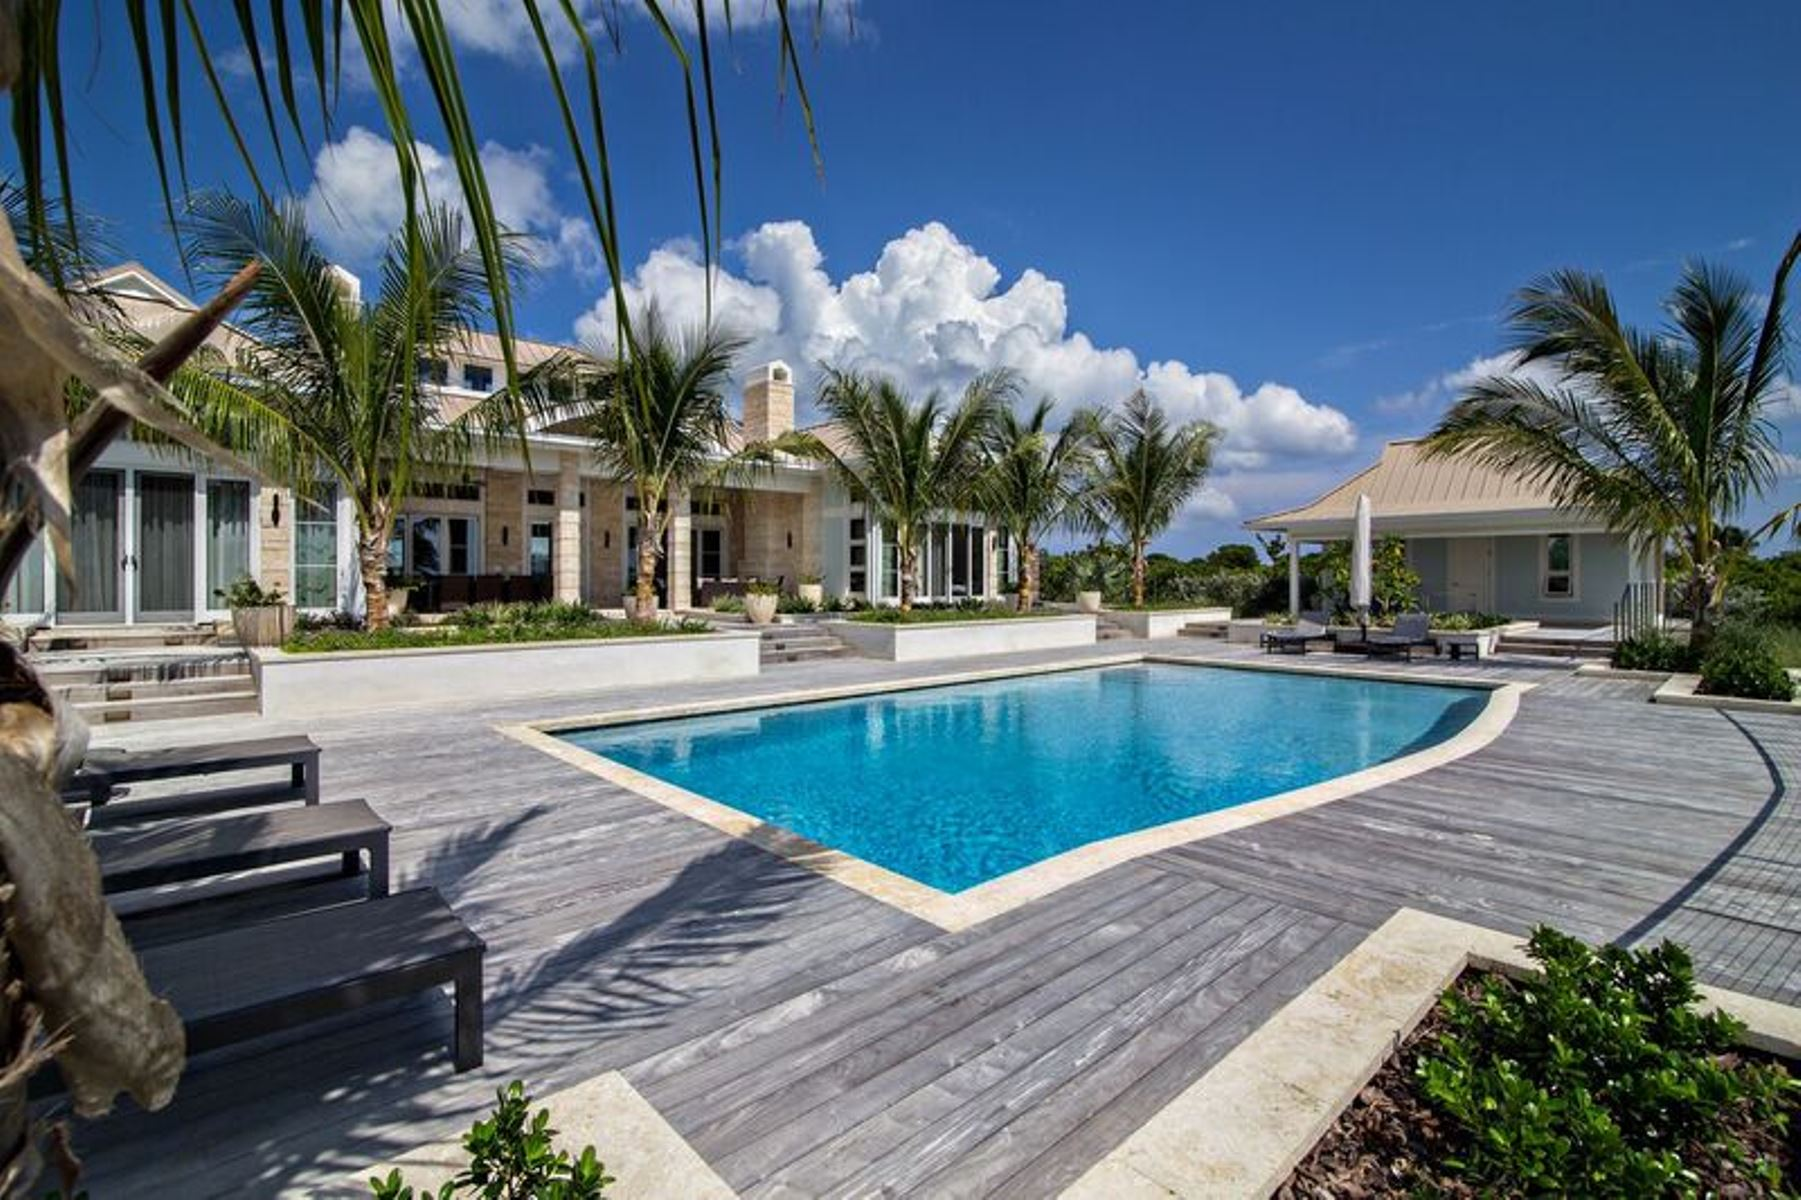 一戸建て のために 売買 アット Enchanting Home Located At The Abaco Club on Winding Bay (MLS 27799) Abaco, バハマ